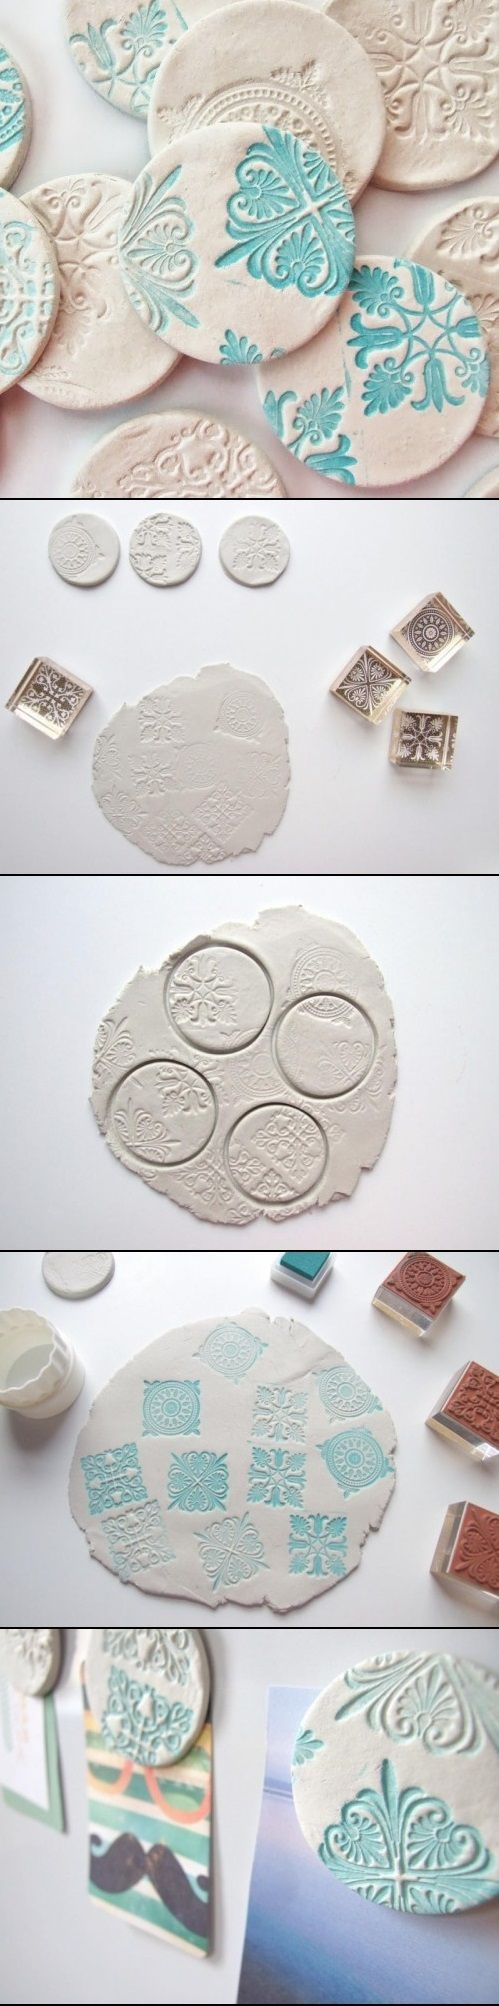 DIY clay magnets - super Idee für Knöpfe